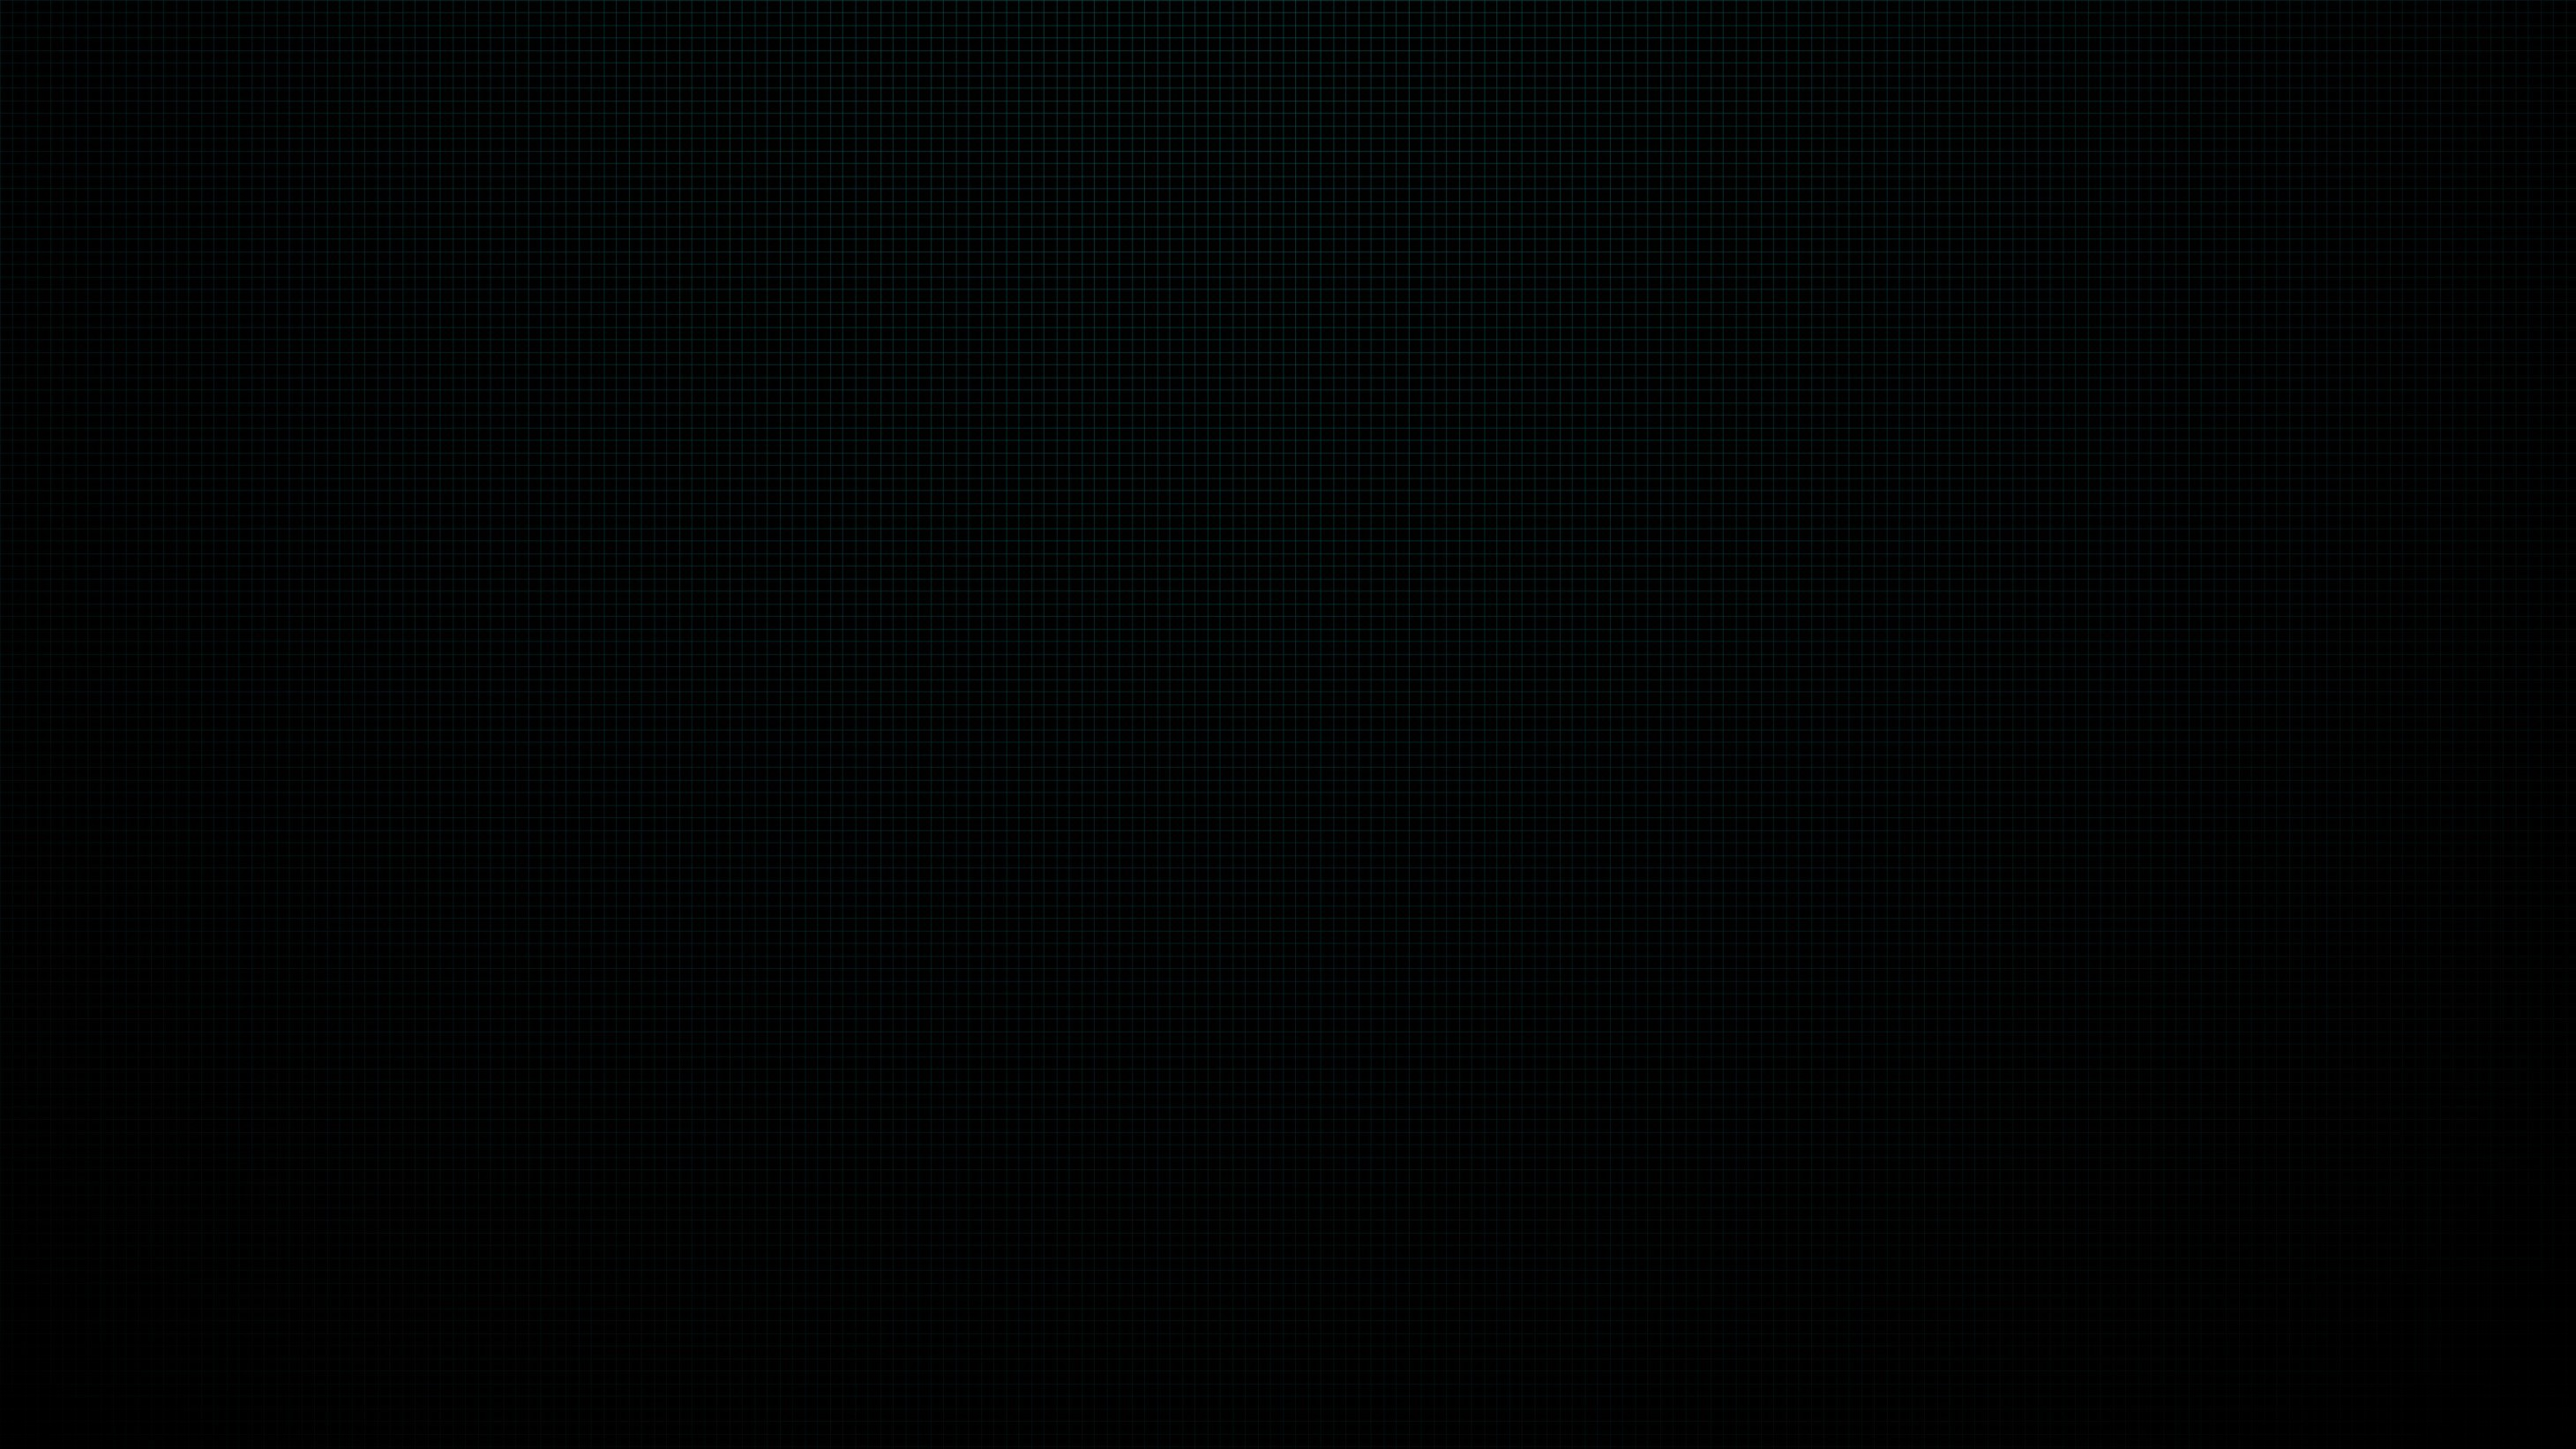 Plain Black Wallpaper Collection For Free Download